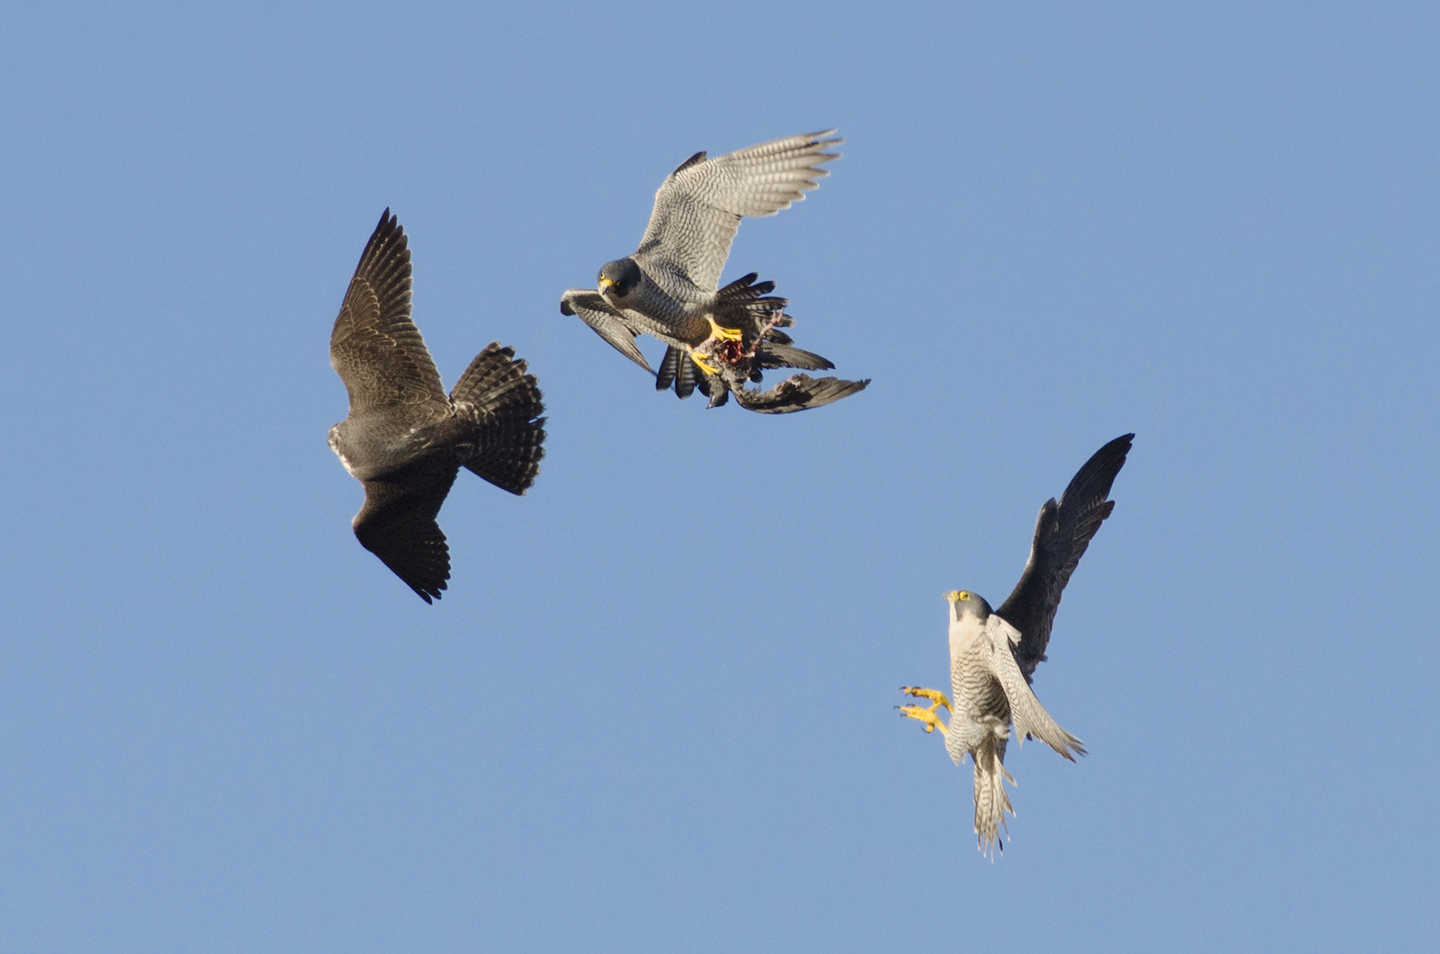 They can develop and learn to hunt in relative safety, where they have a year round supply of feral pigeons to play with